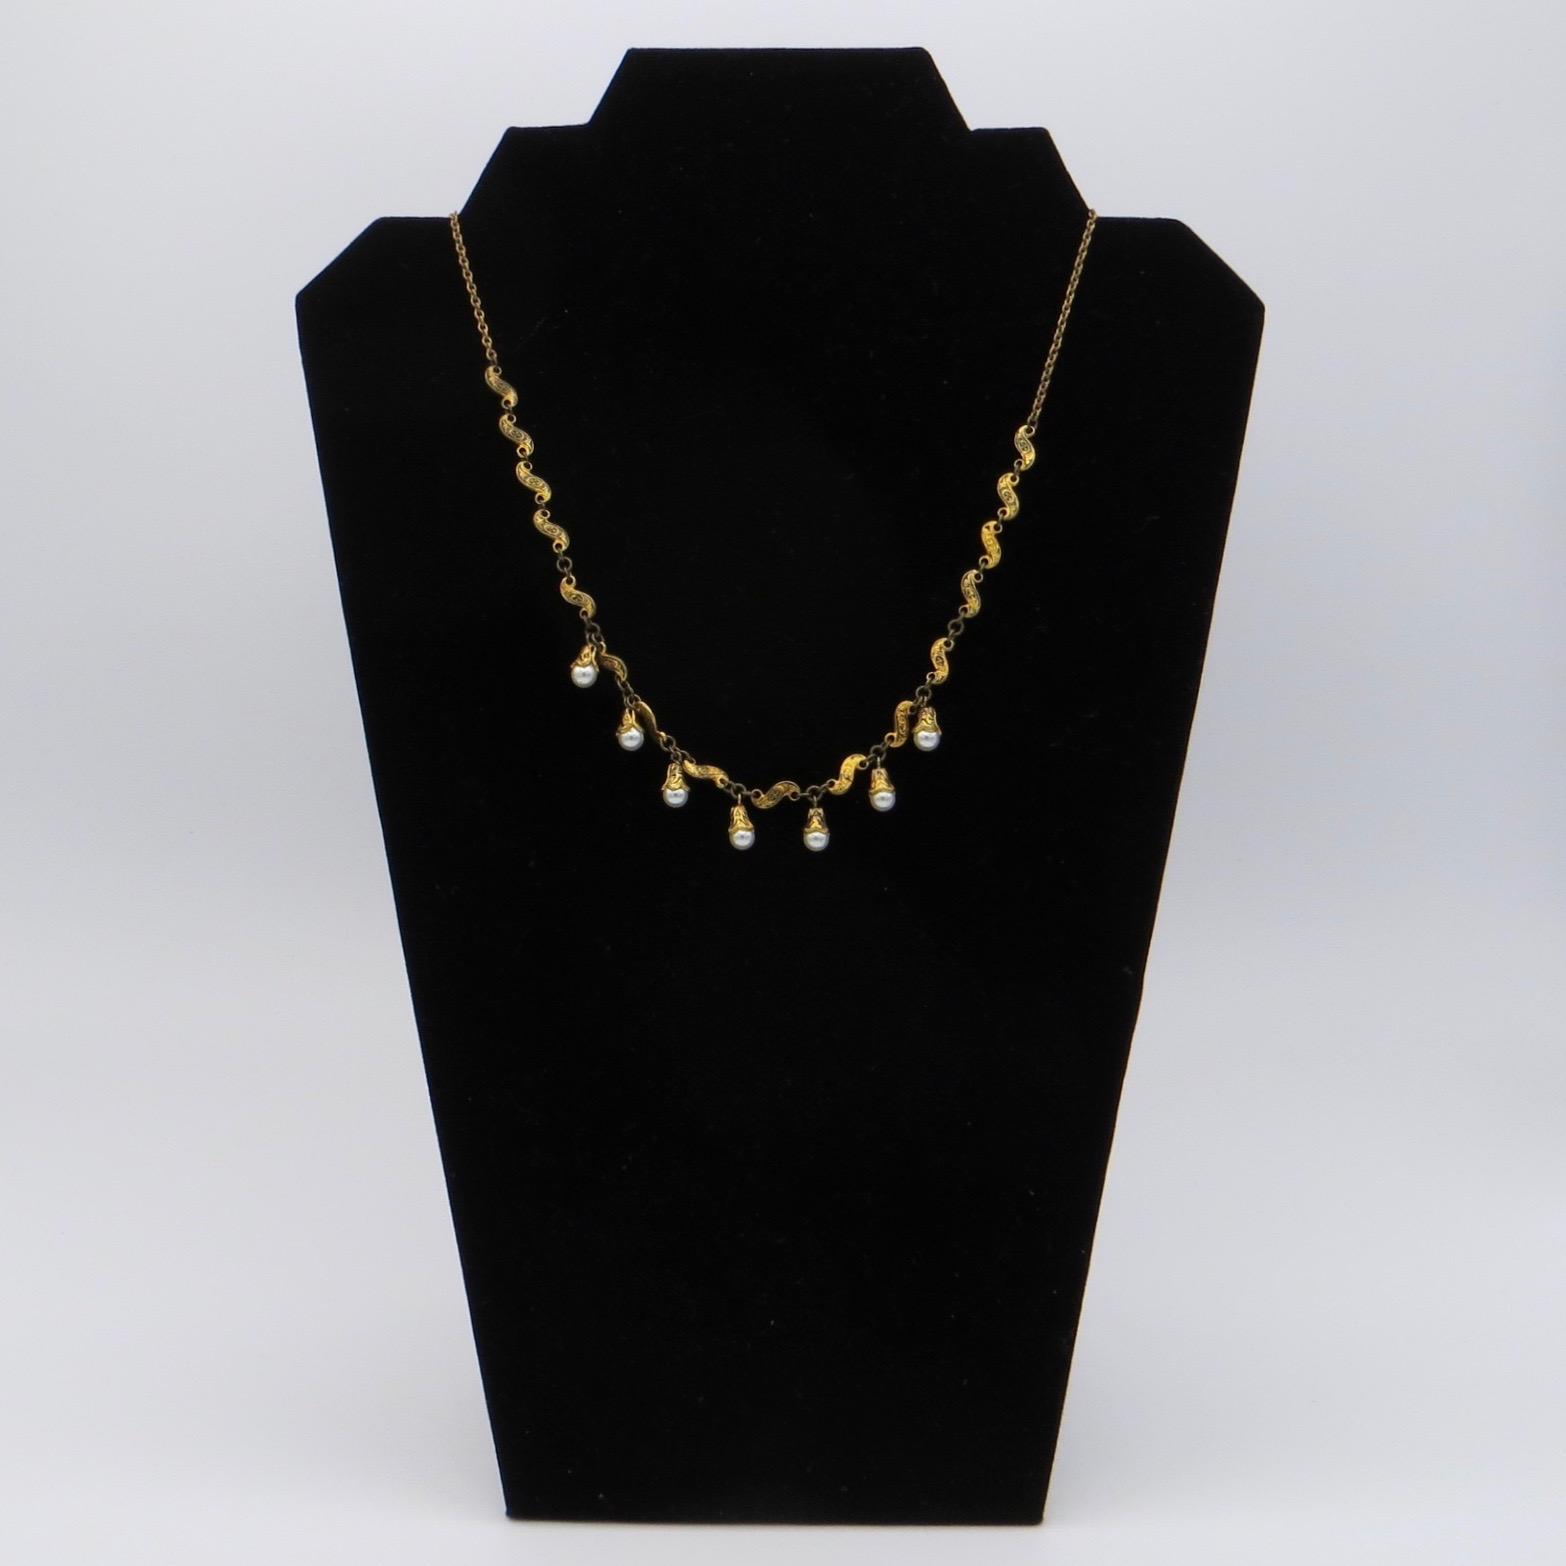 Victorian-Style Necklace